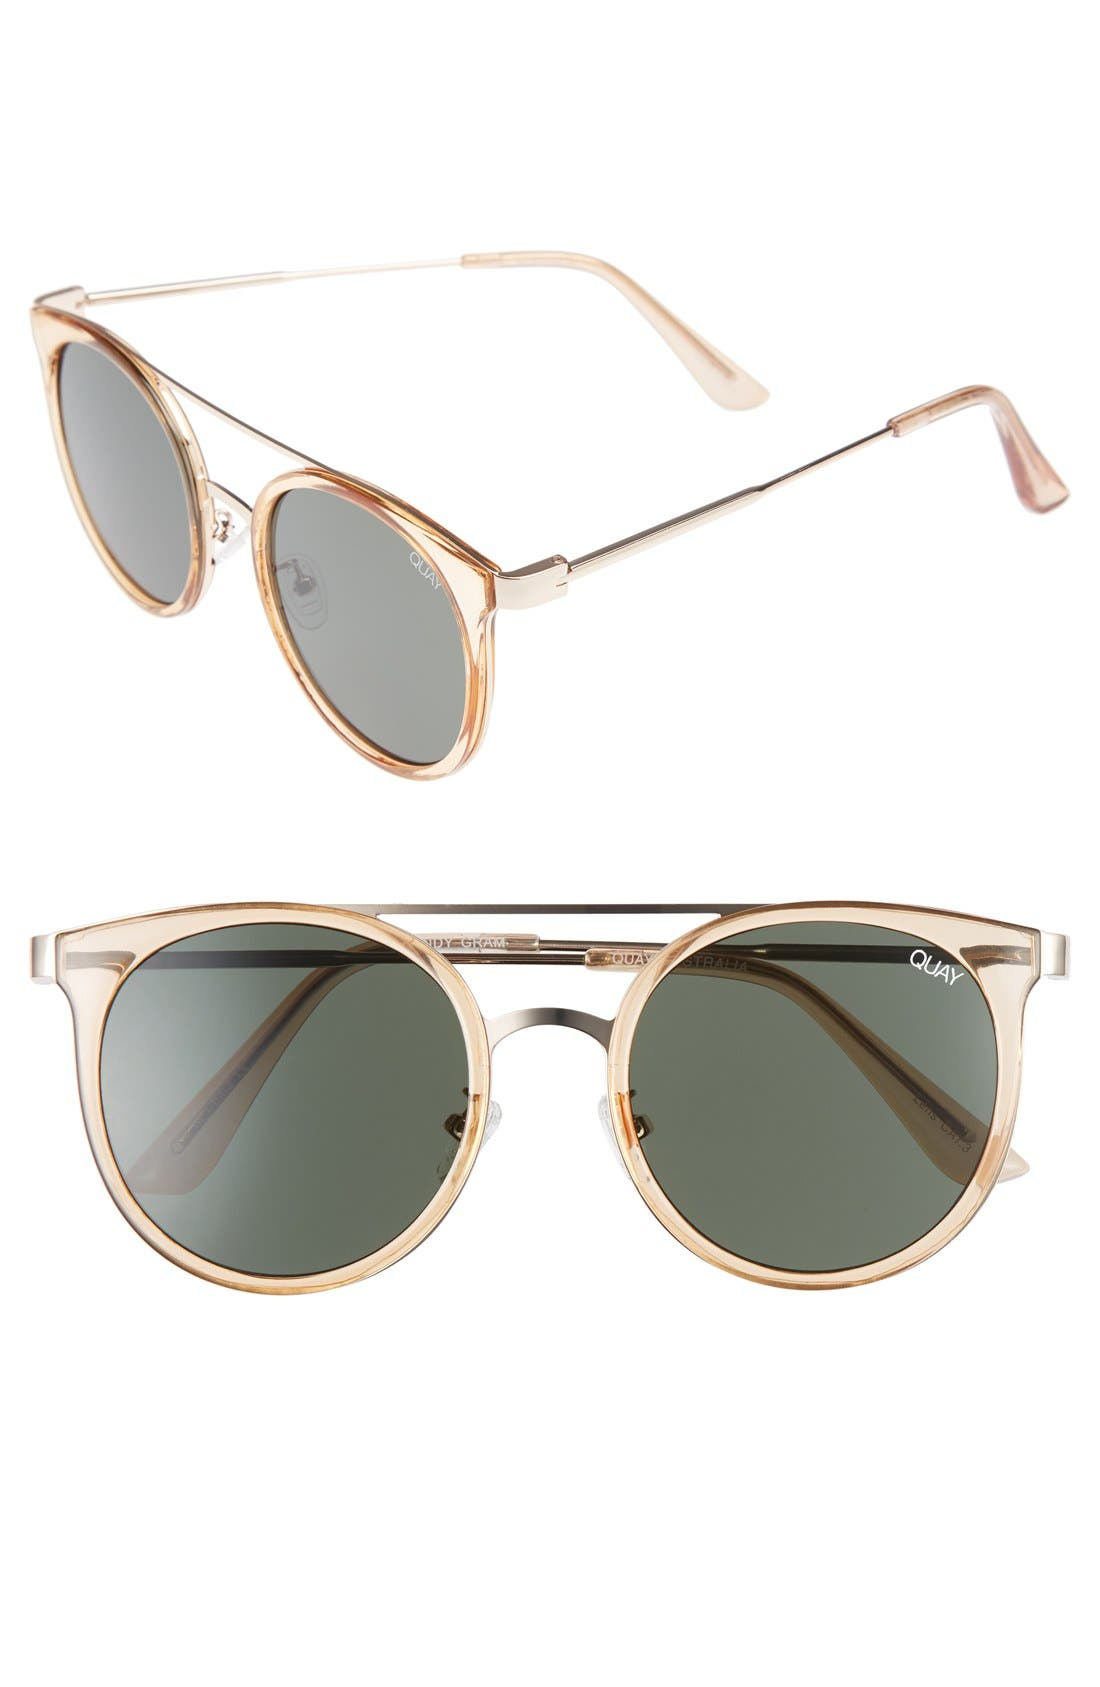 Quay Australia Kandy Gram 51mm Round Sunglasses